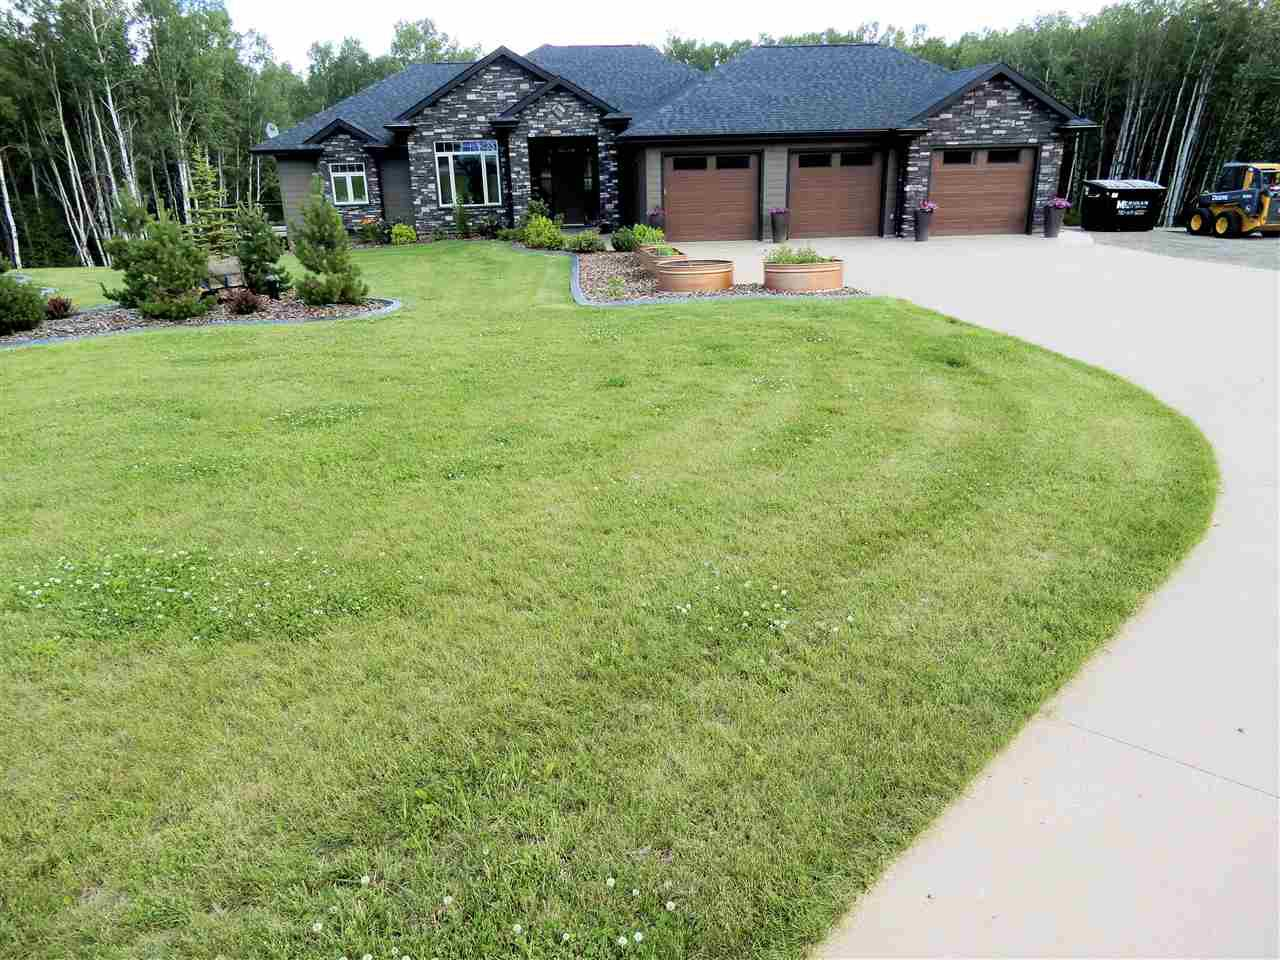 Main Photo: 1130 TWP RD 534: Rural Parkland County House for sale : MLS®# E4207030